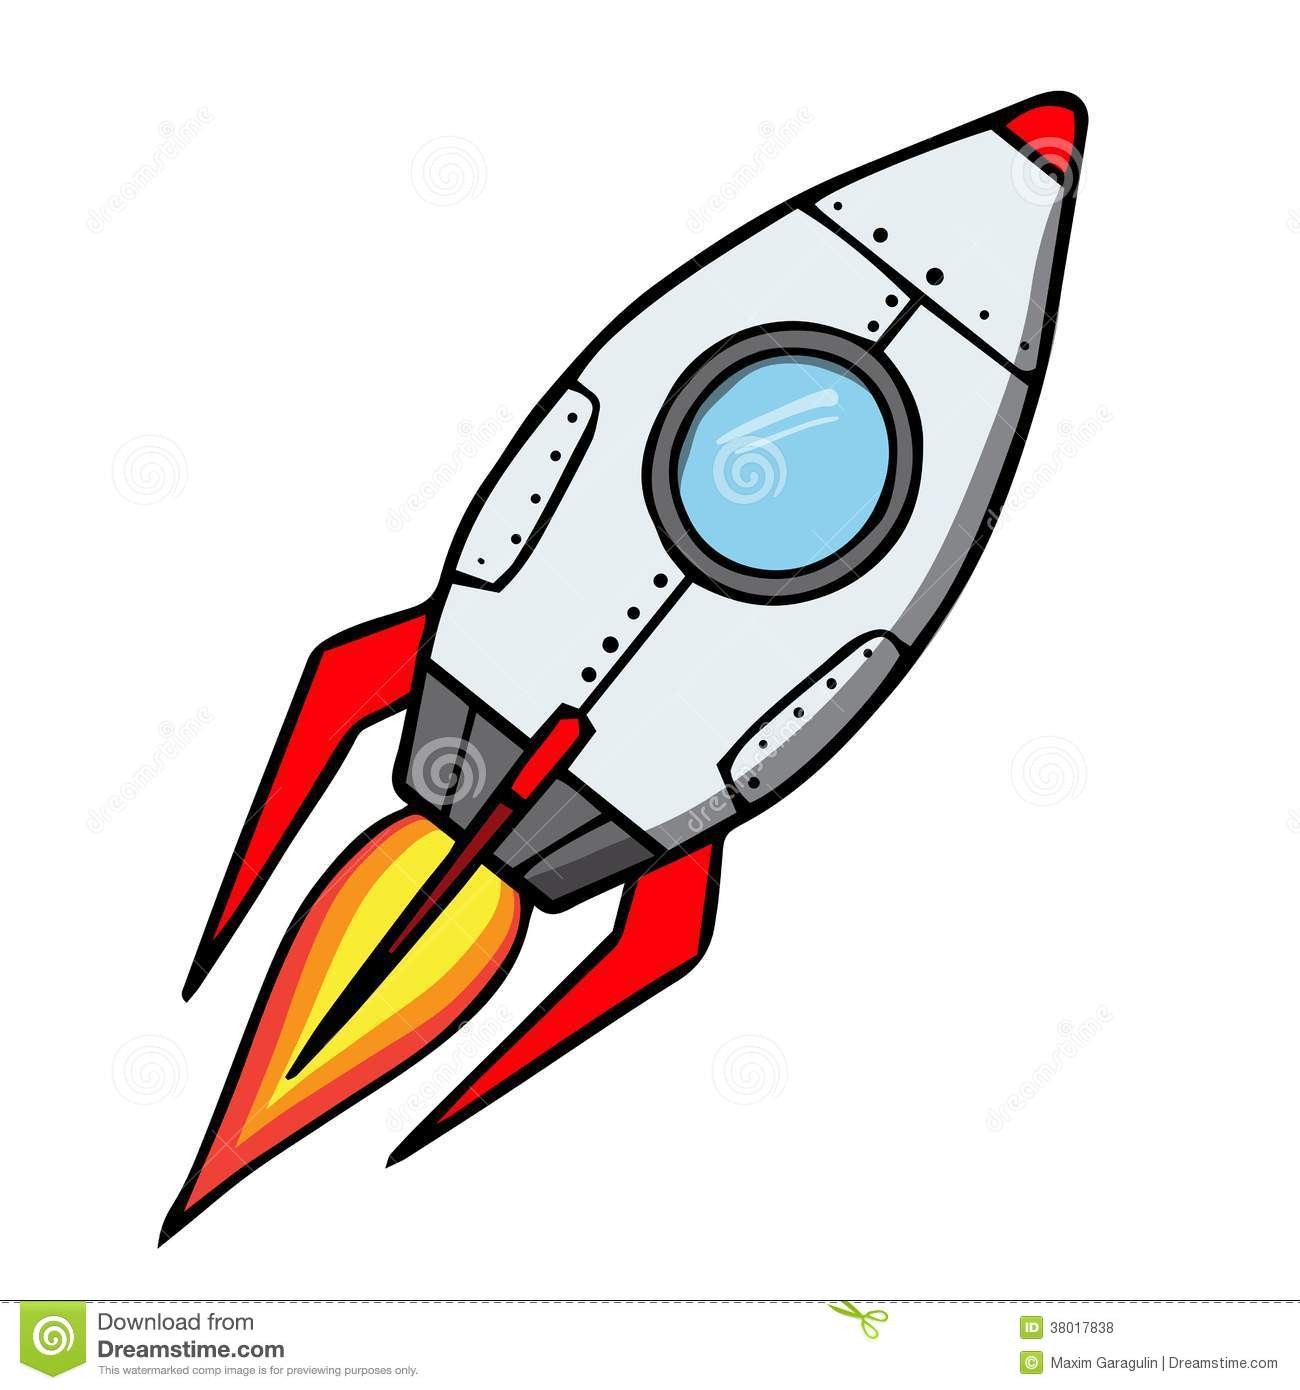 Booster clipart.